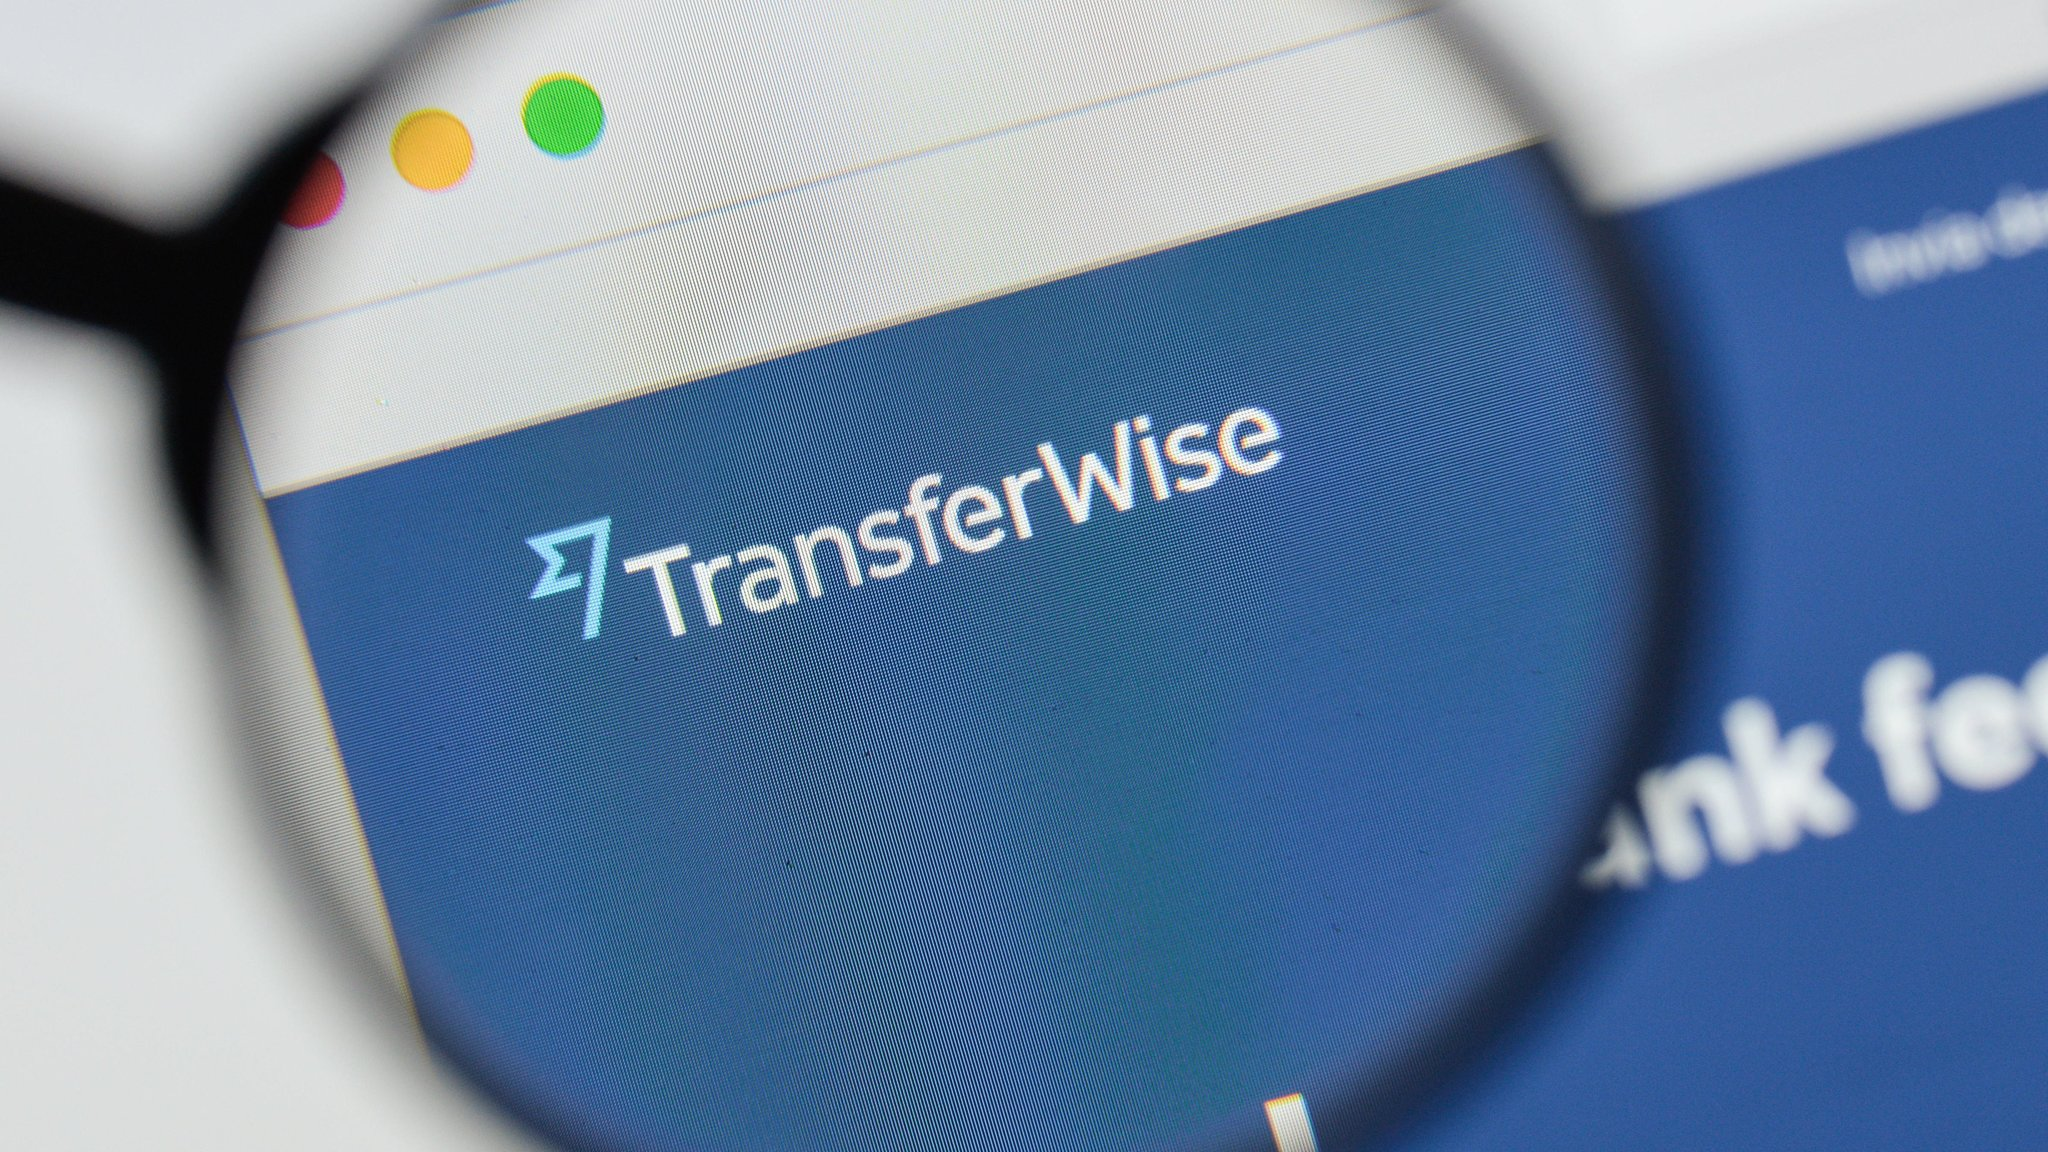 TransferWise plans further price cuts.